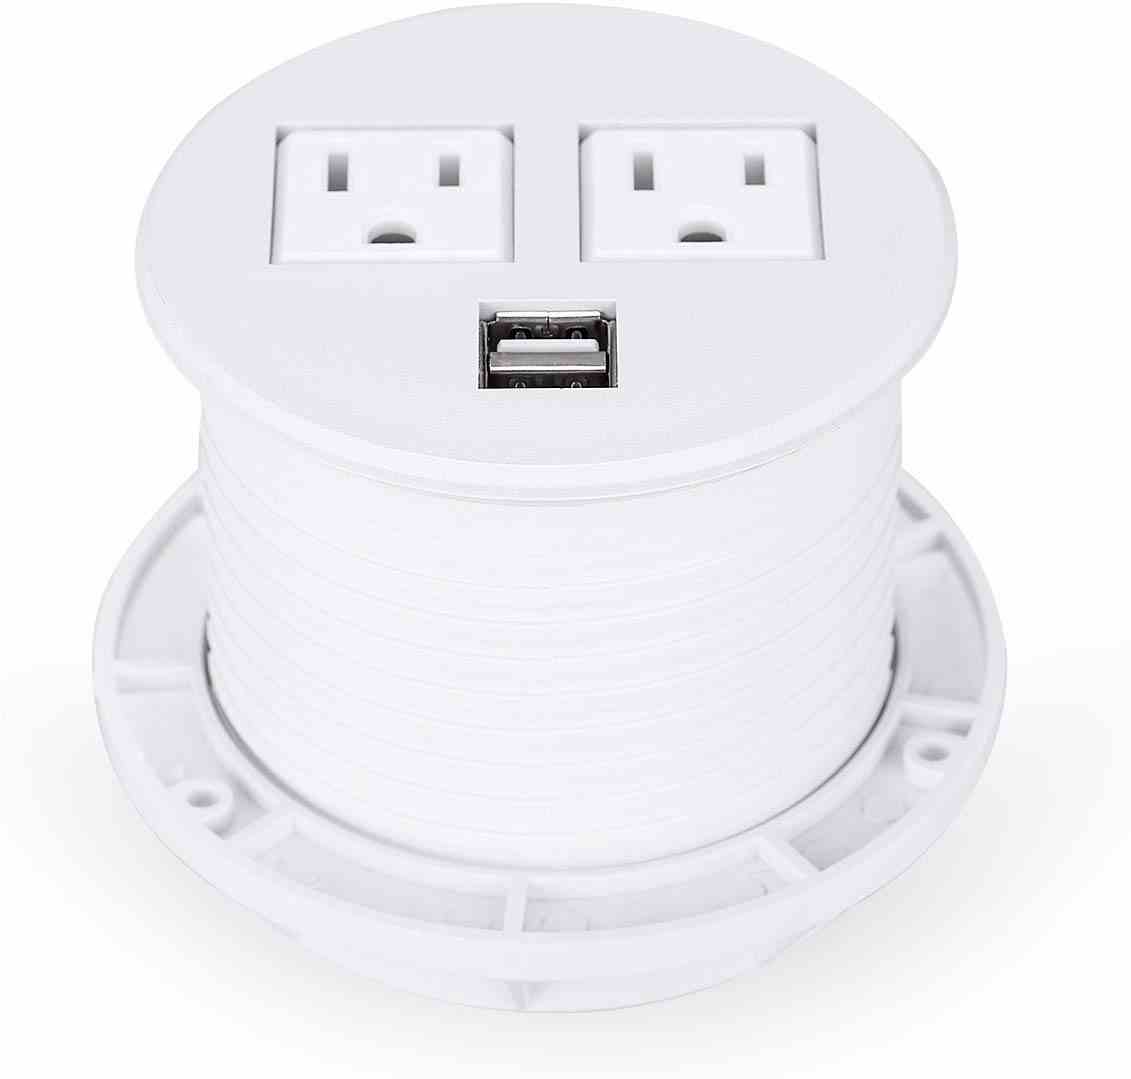 🥇 Desktop Power Outlet Grommet Hub 2 Power Socket 🥇 #1